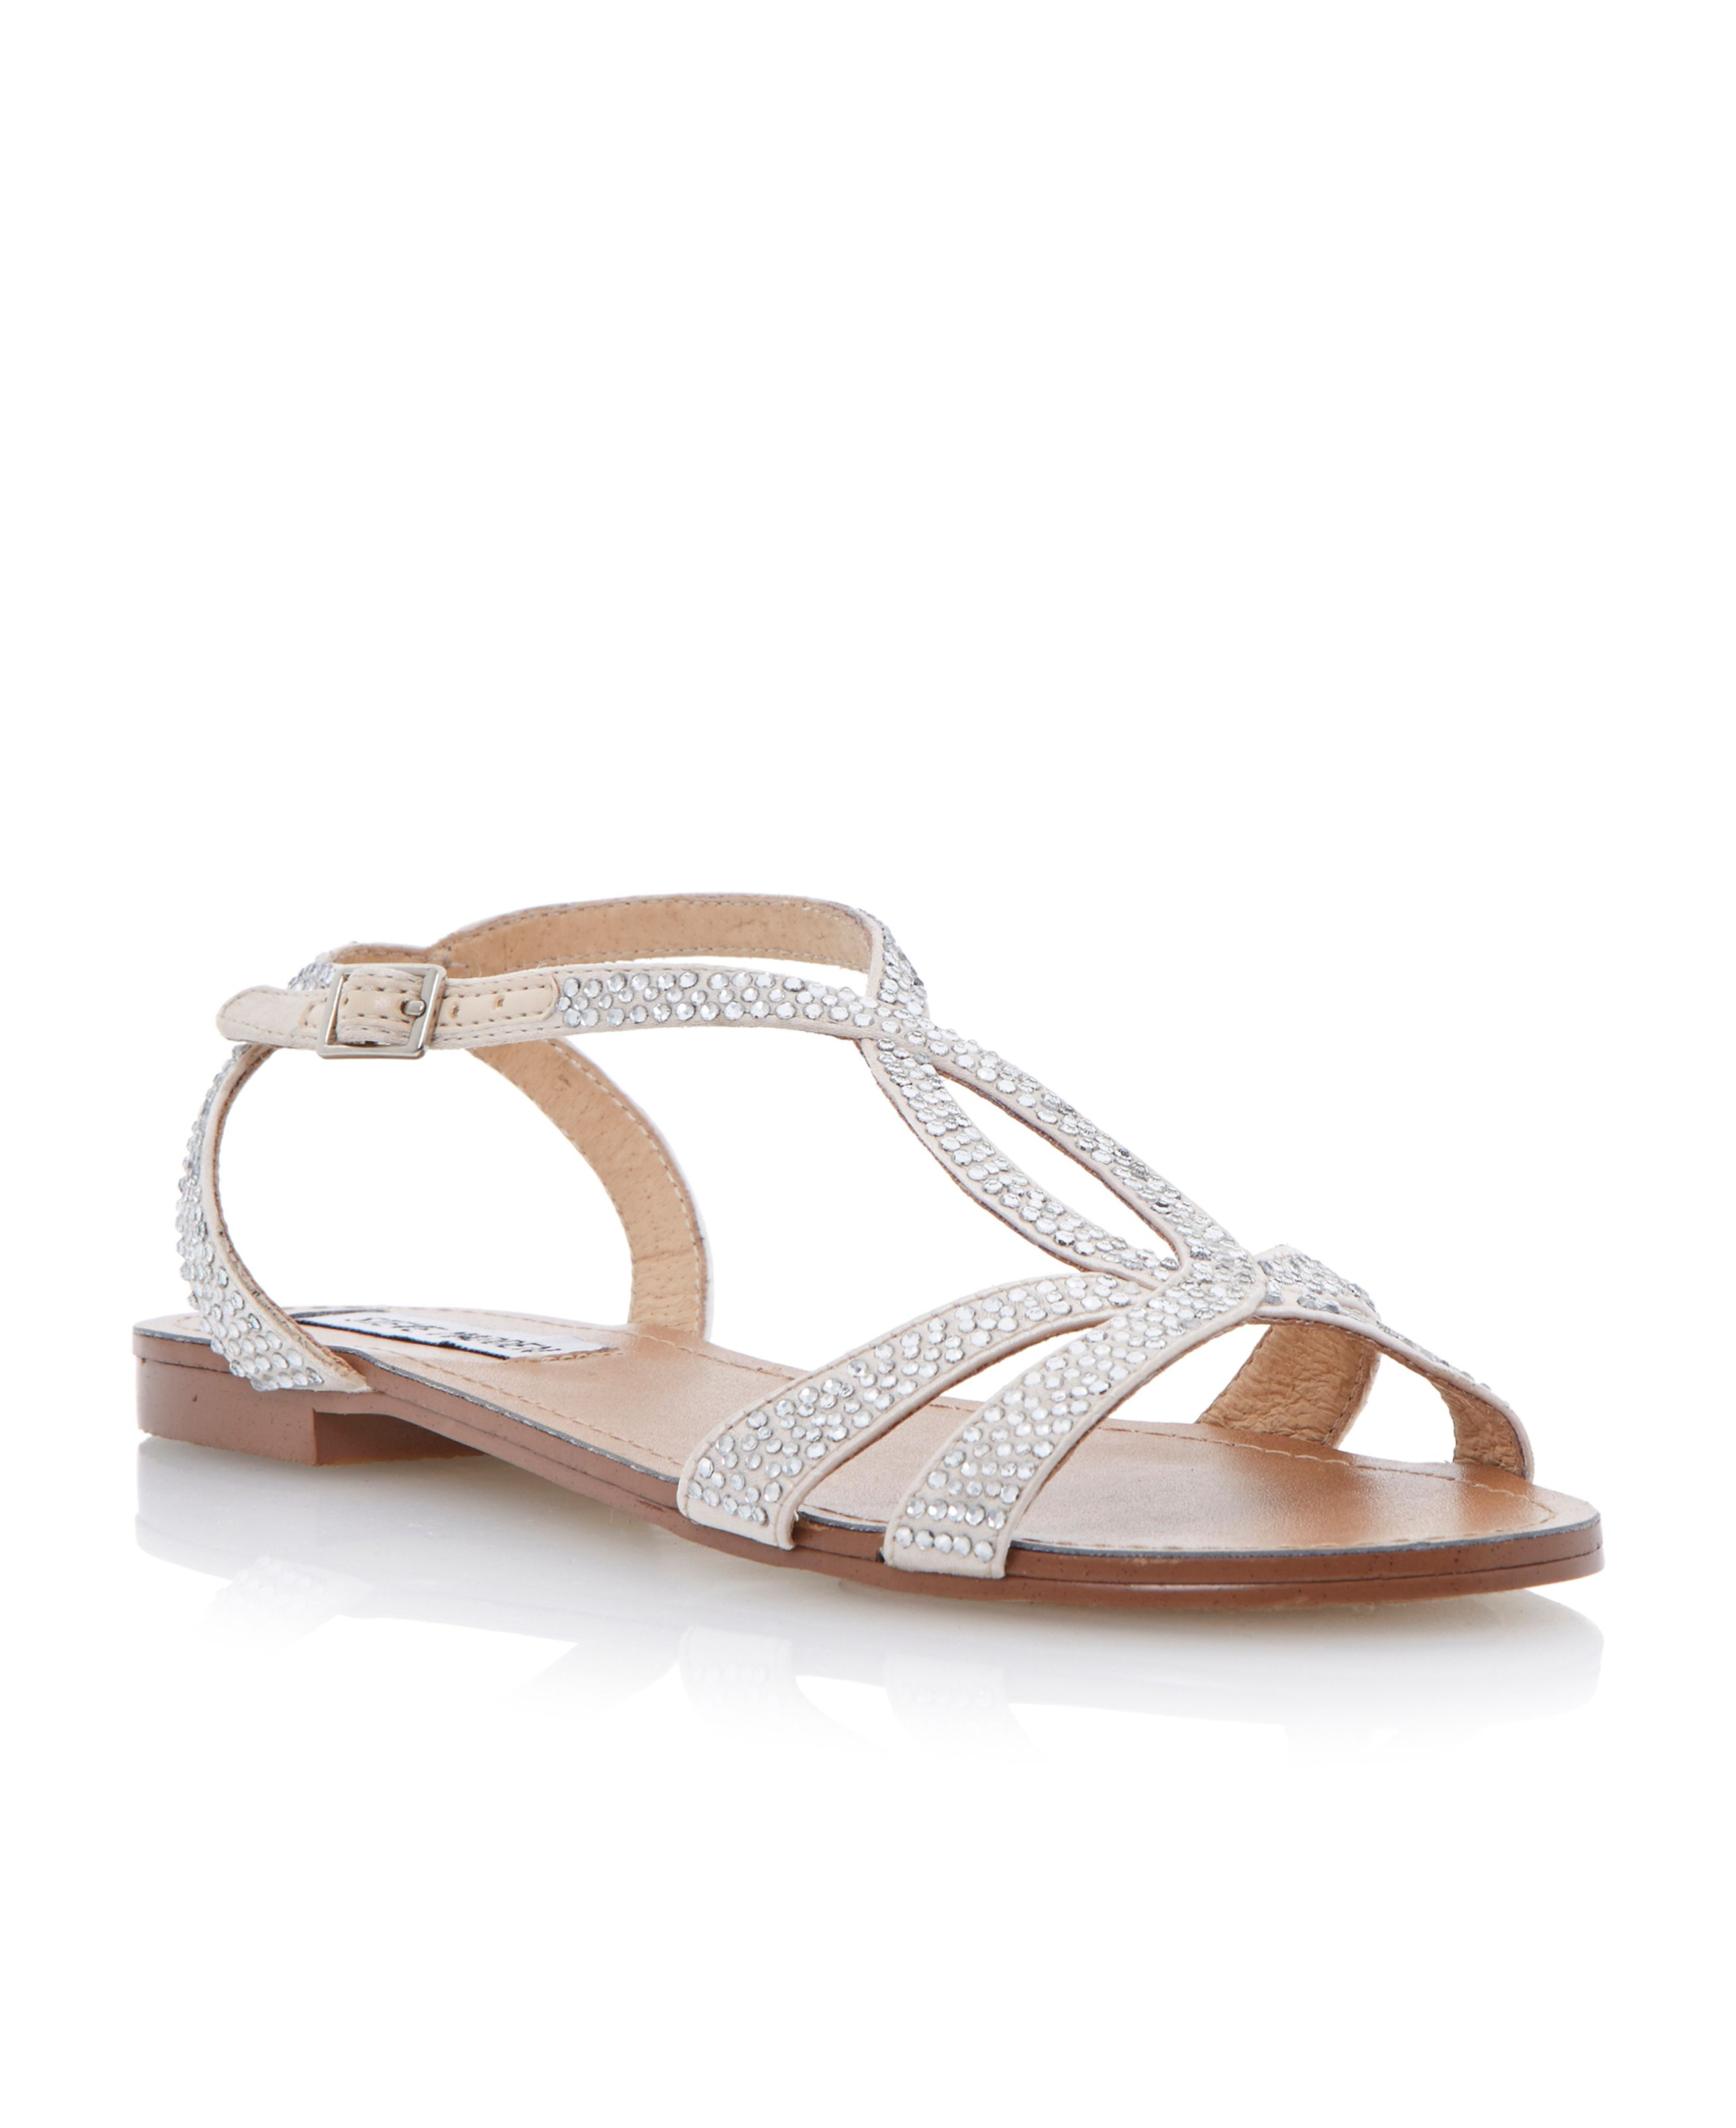 Starrz diamante crossover flat sandals